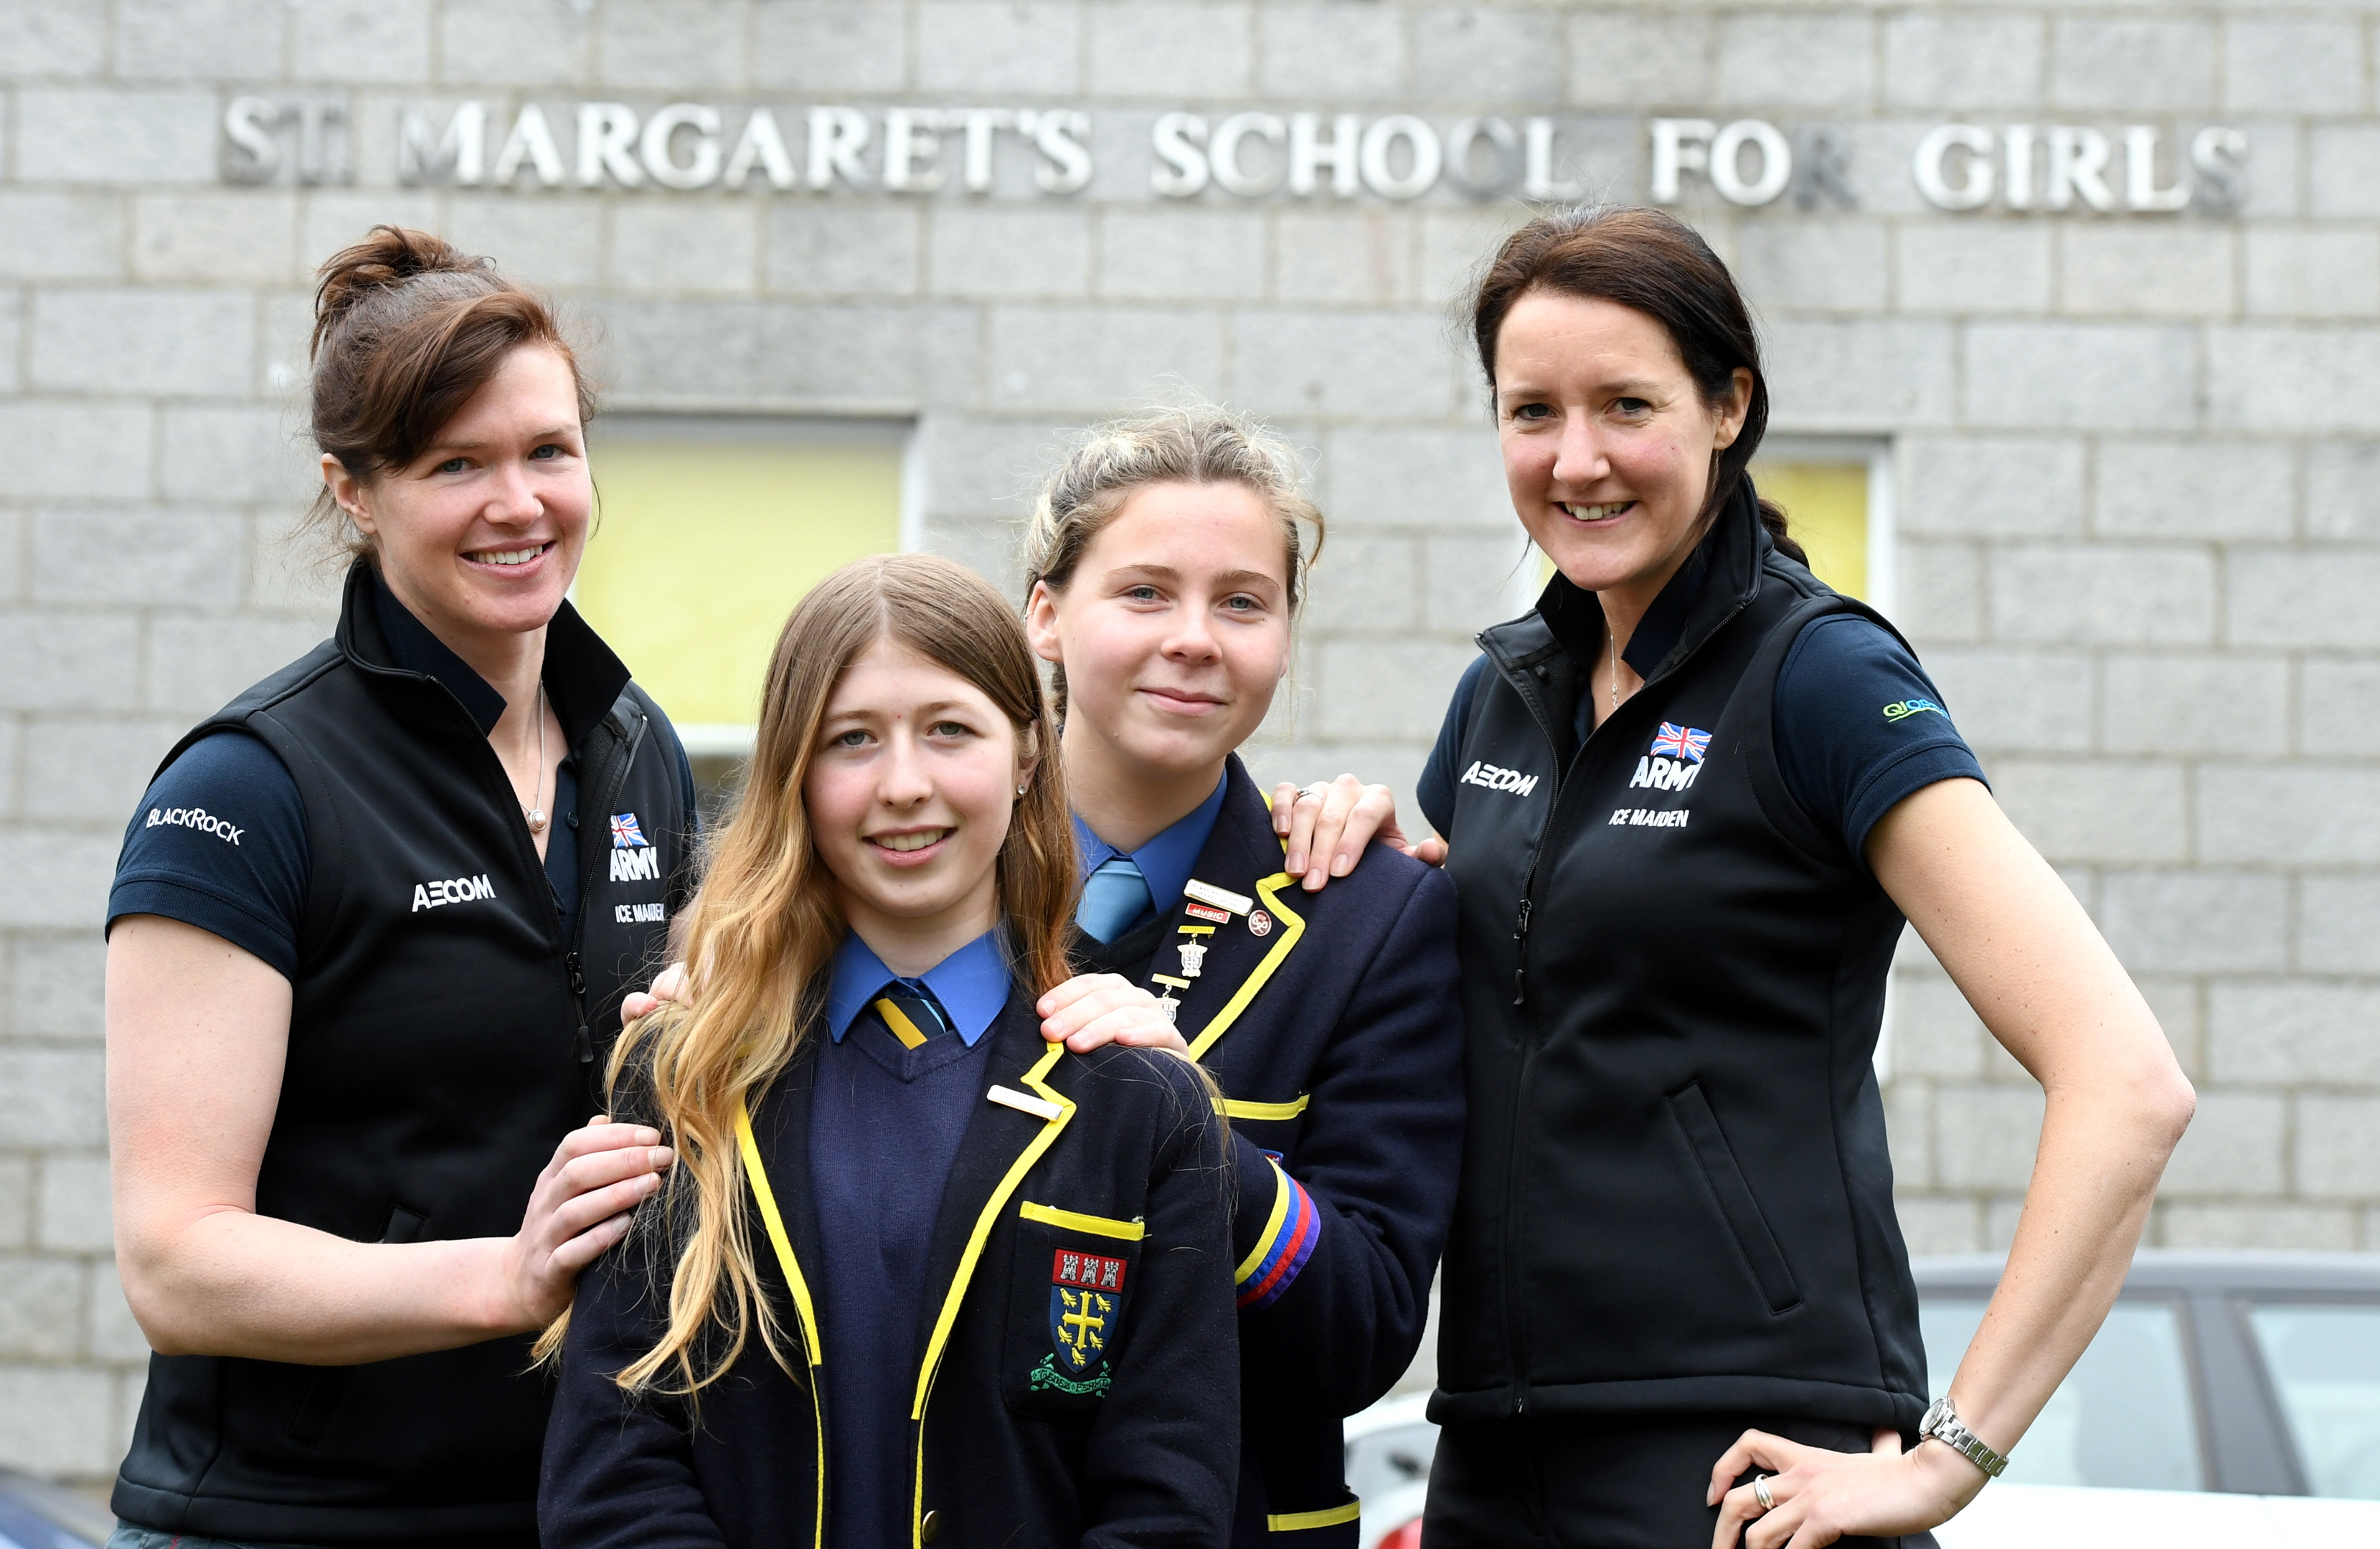 L-R Major Nics Wetherill, pupils Charley Hamilton, Abby Miller and Lance Sergeant Sophie Montagne.